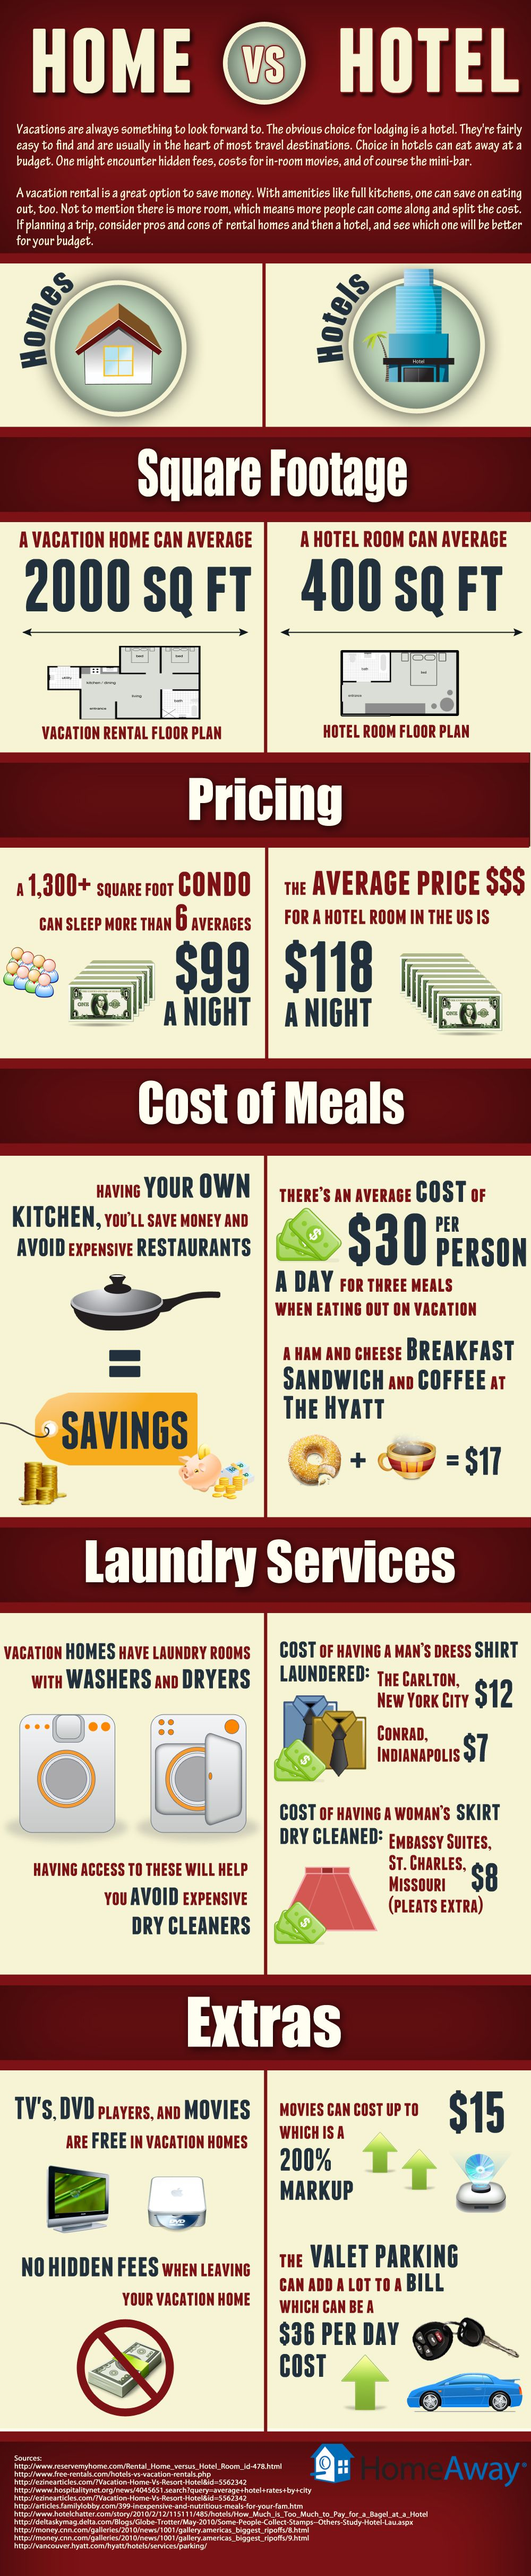 vacation rental homes versus hotel comparison infographic